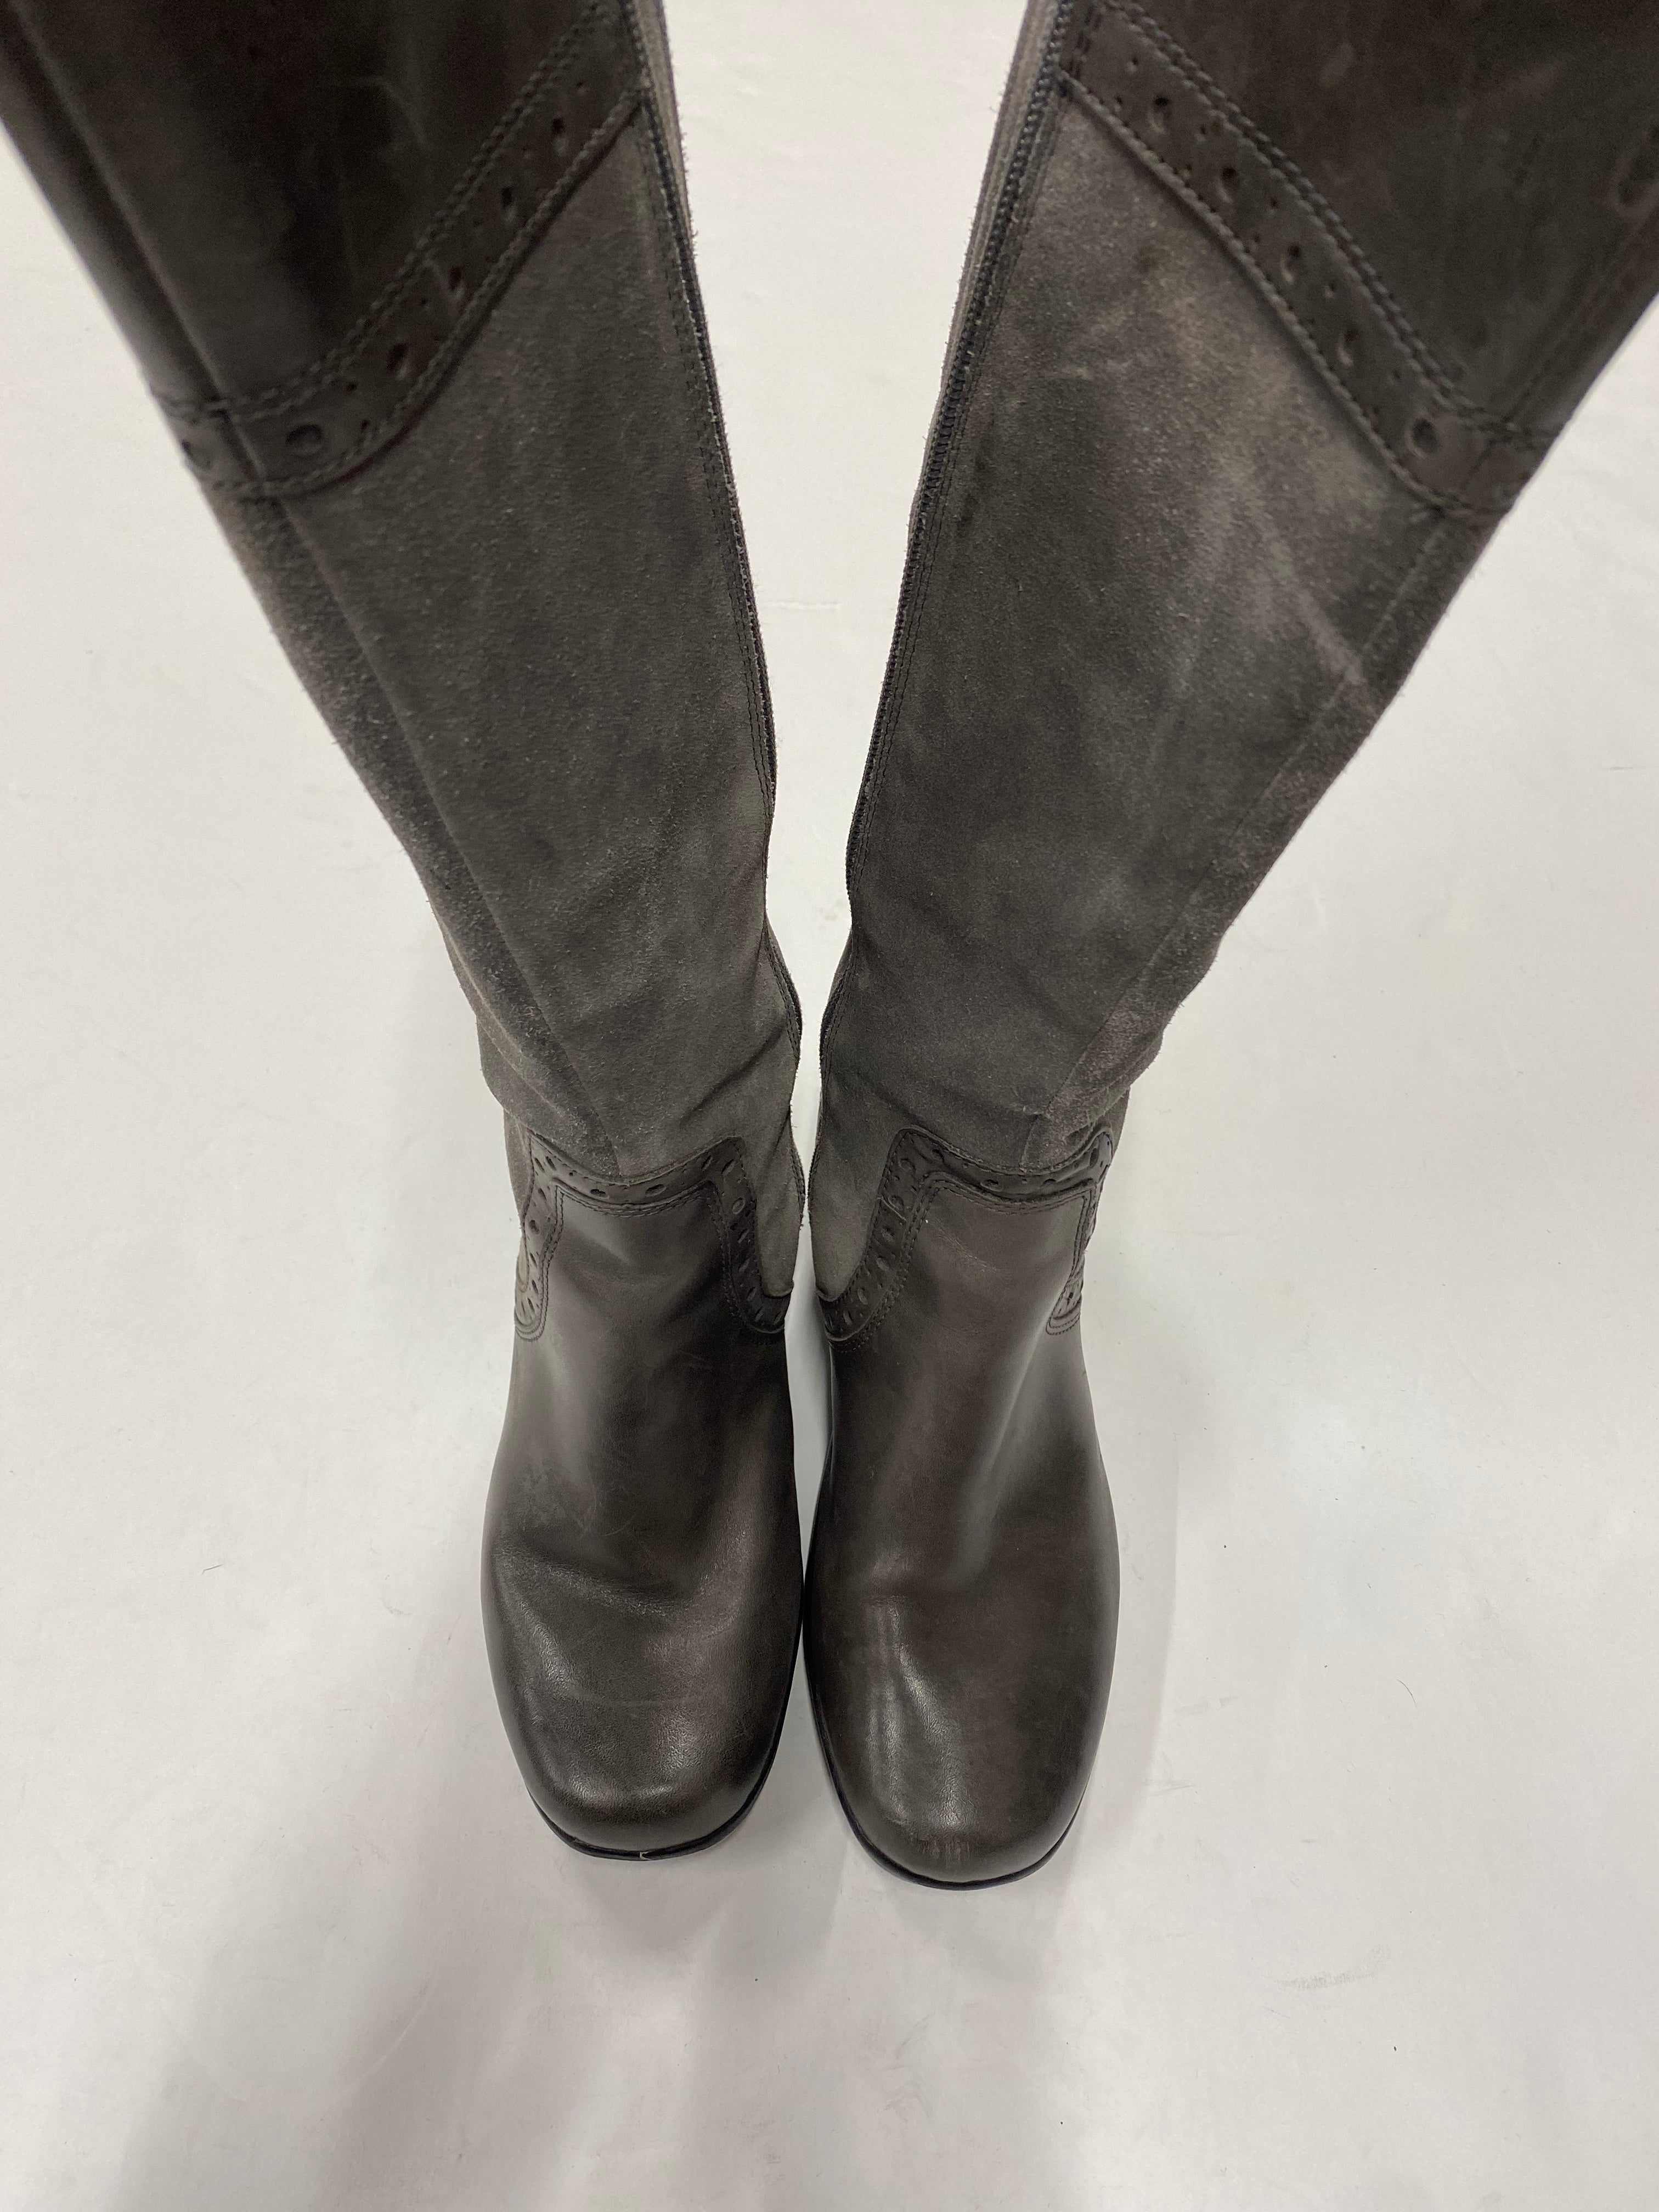 Primary Photo - BRAND: CLARKS <BR>STYLE: BOOTS KNEE <BR>COLOR: GREY <BR>SIZE: 7 <BR>SKU: 200-20012-8890